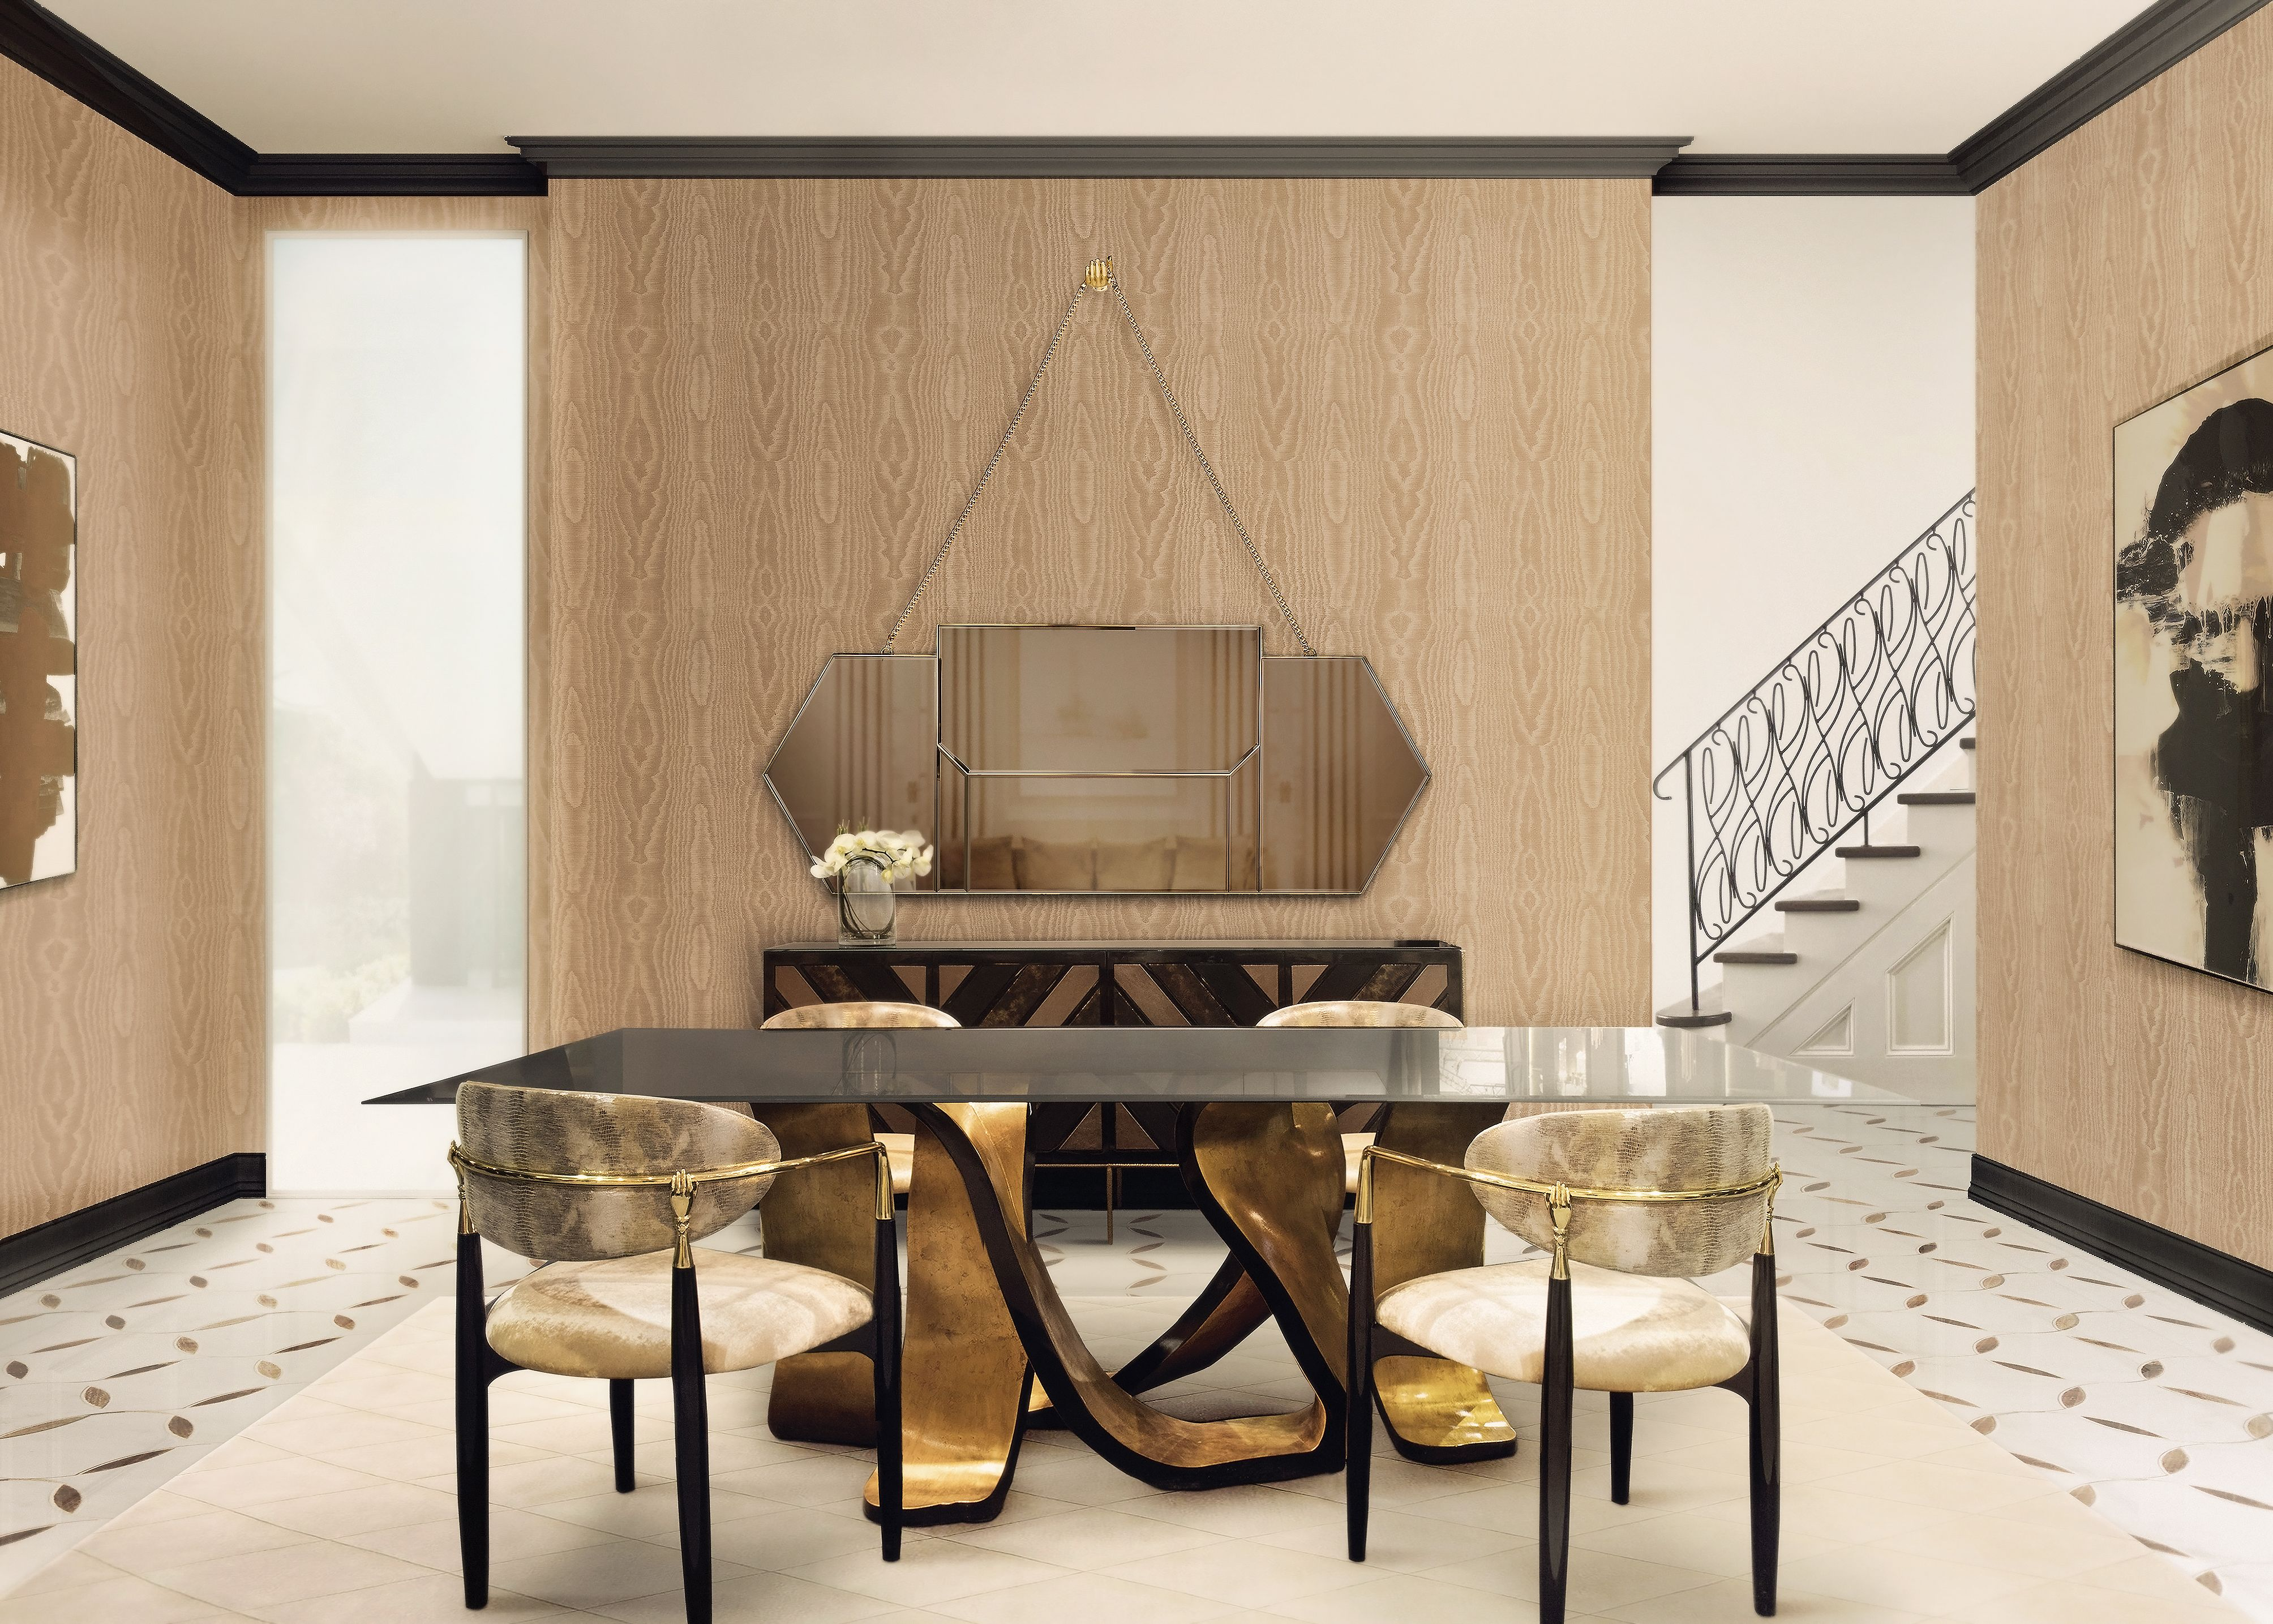 RIBBON Dining Table | Design trends, Luxury dining tables and ...